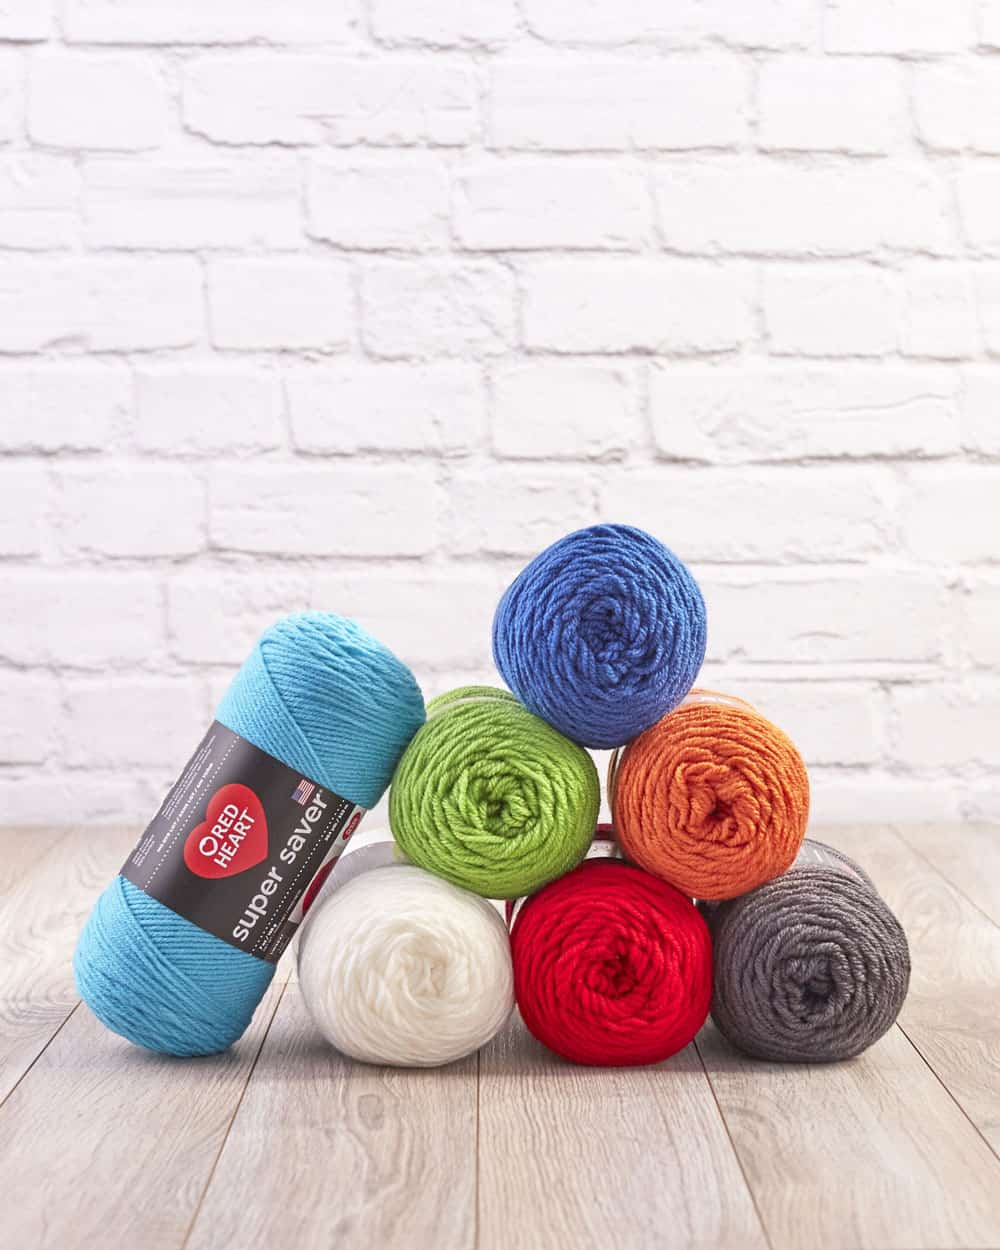 Red Heart Super Saver, America's Favorite Yarn